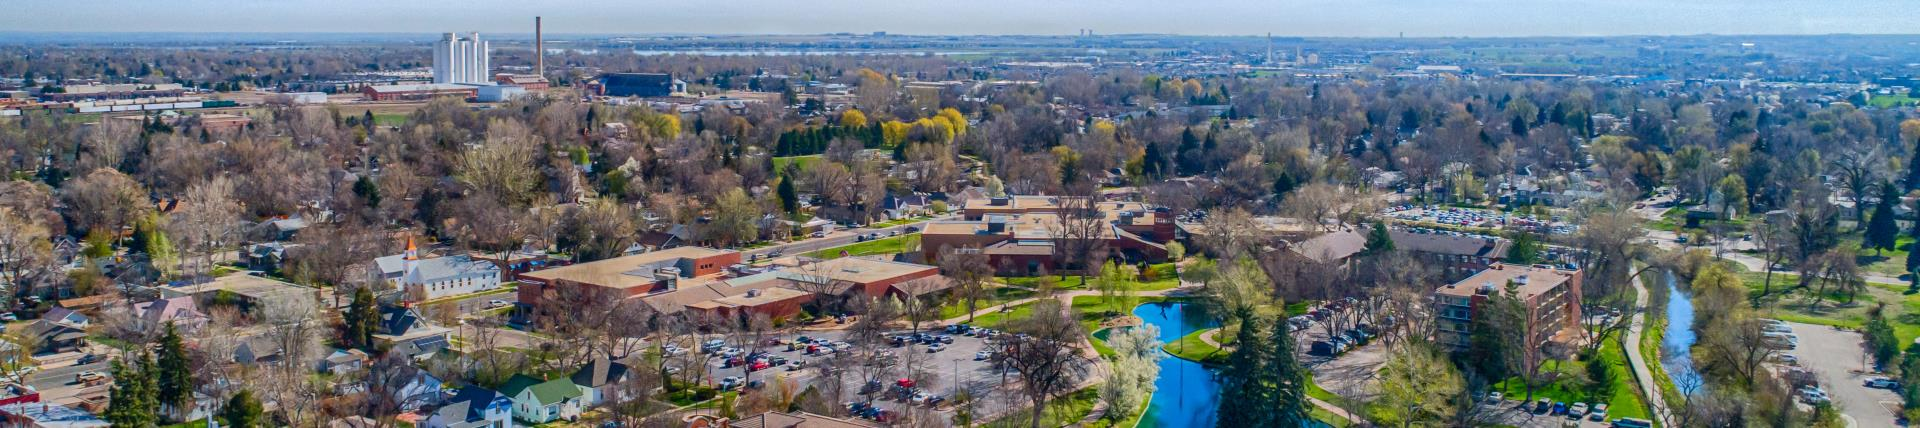 City of Loveland skyline